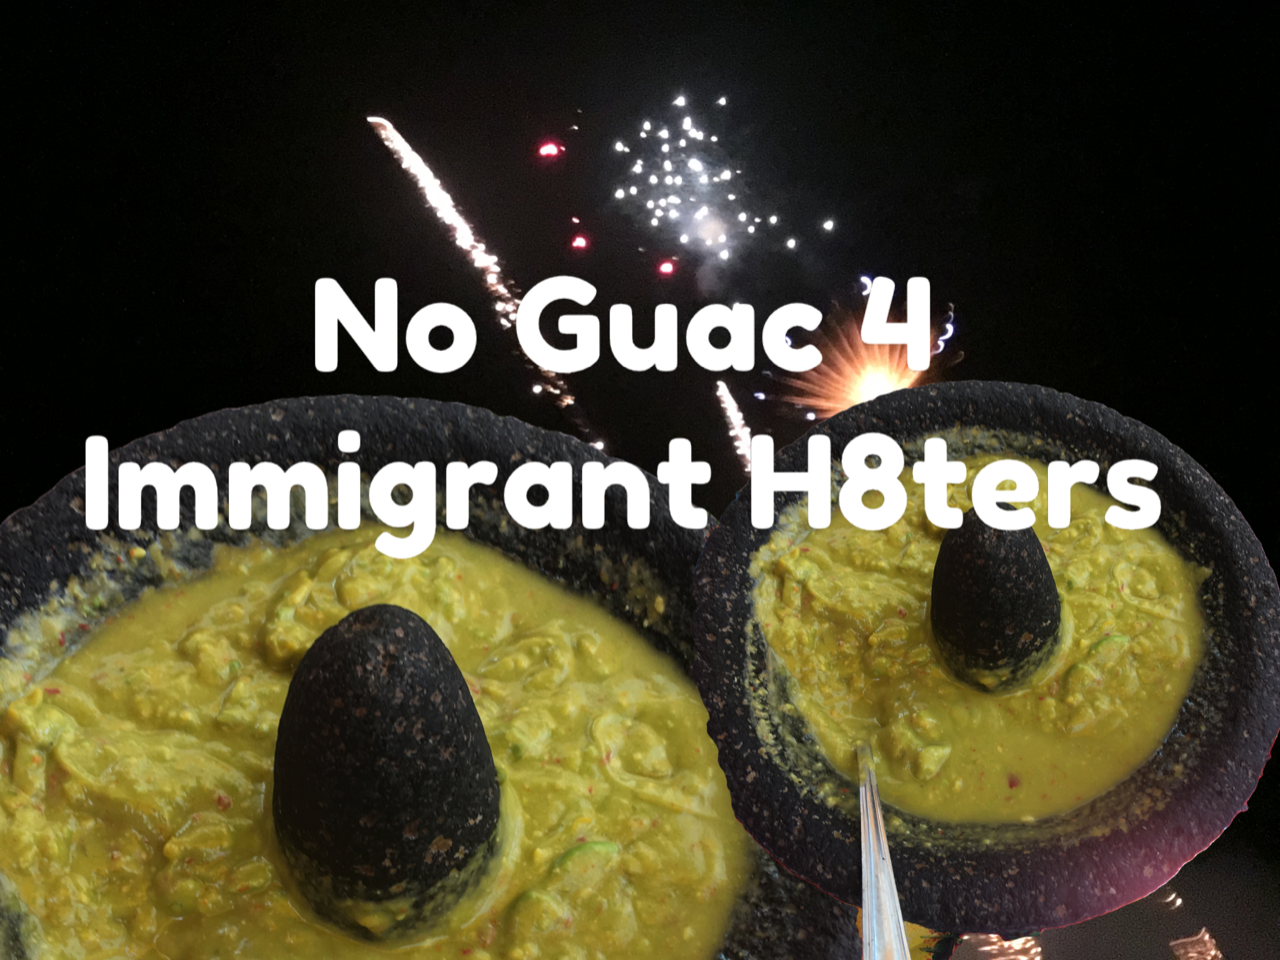 No Guacamole for The Immigrant Haters